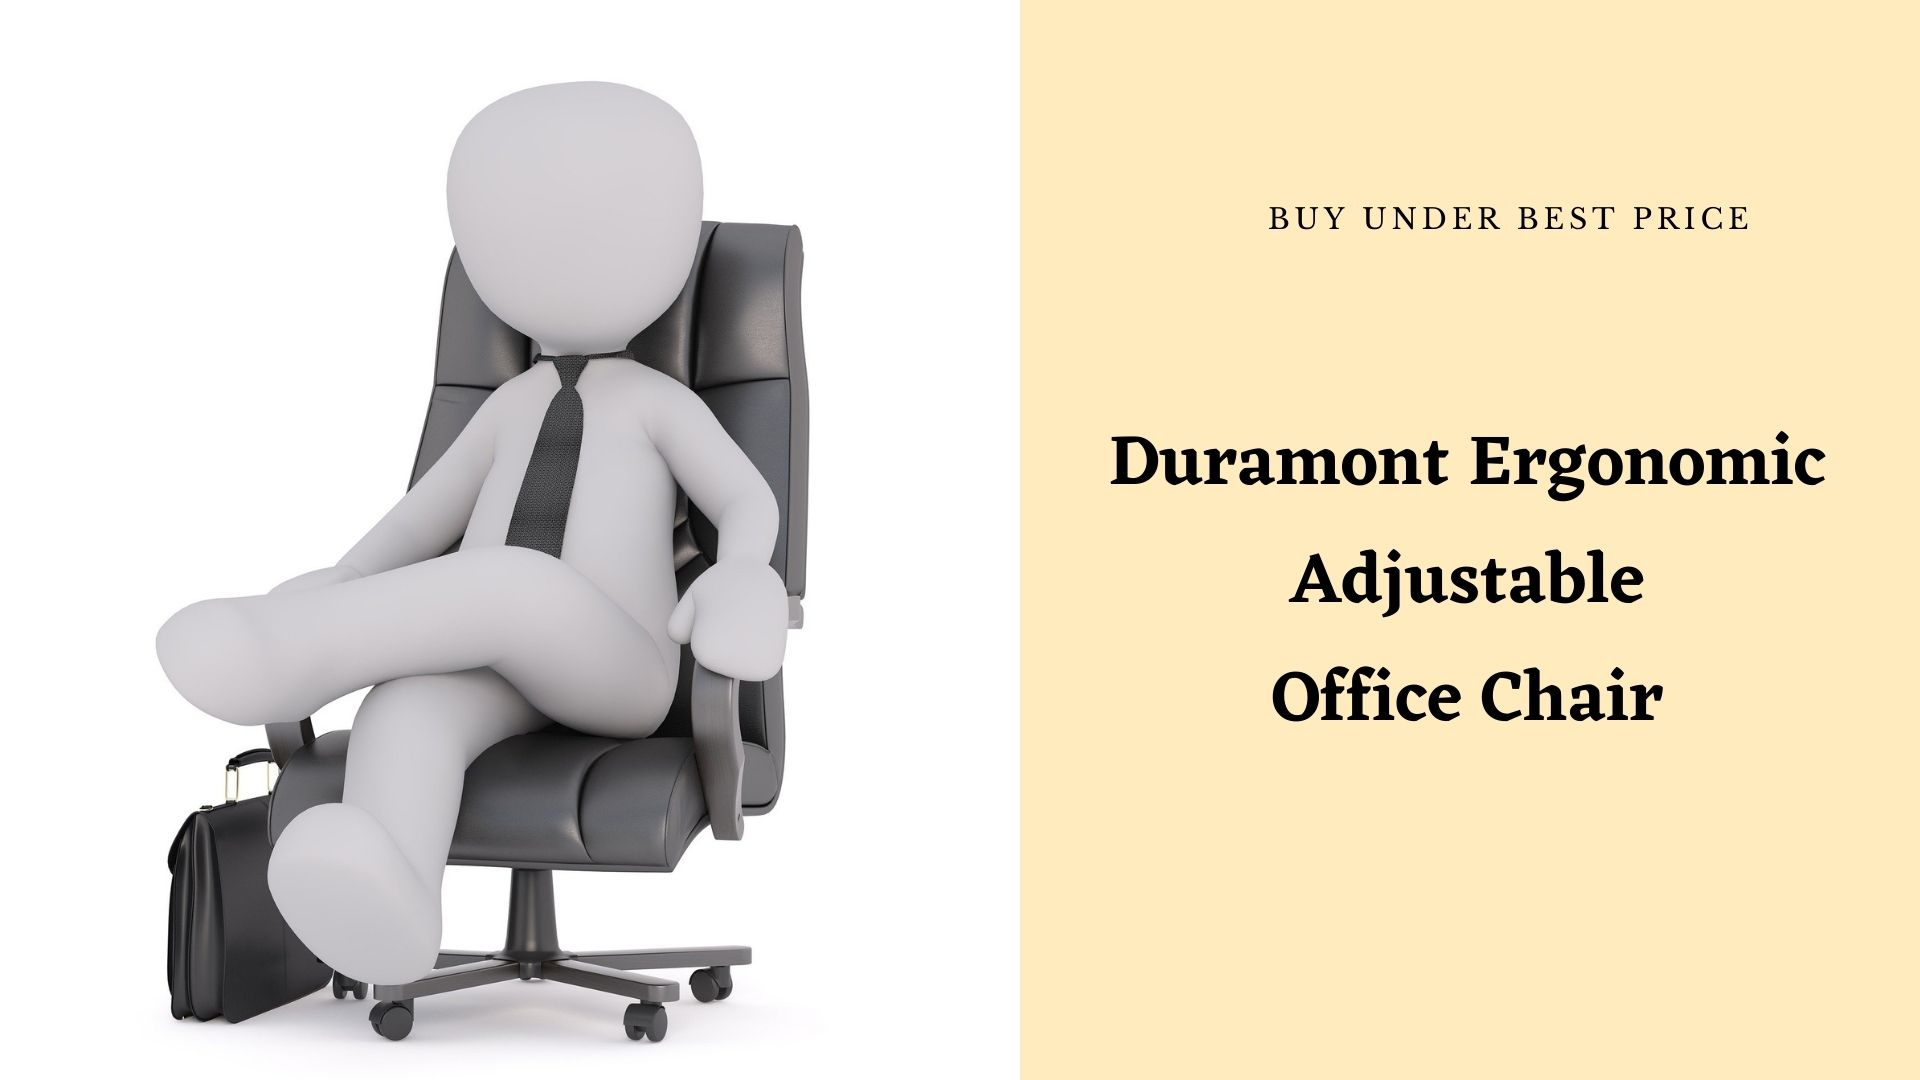 The Ultimate Guide: Duramont Ergonomic Adjustable Office Chair